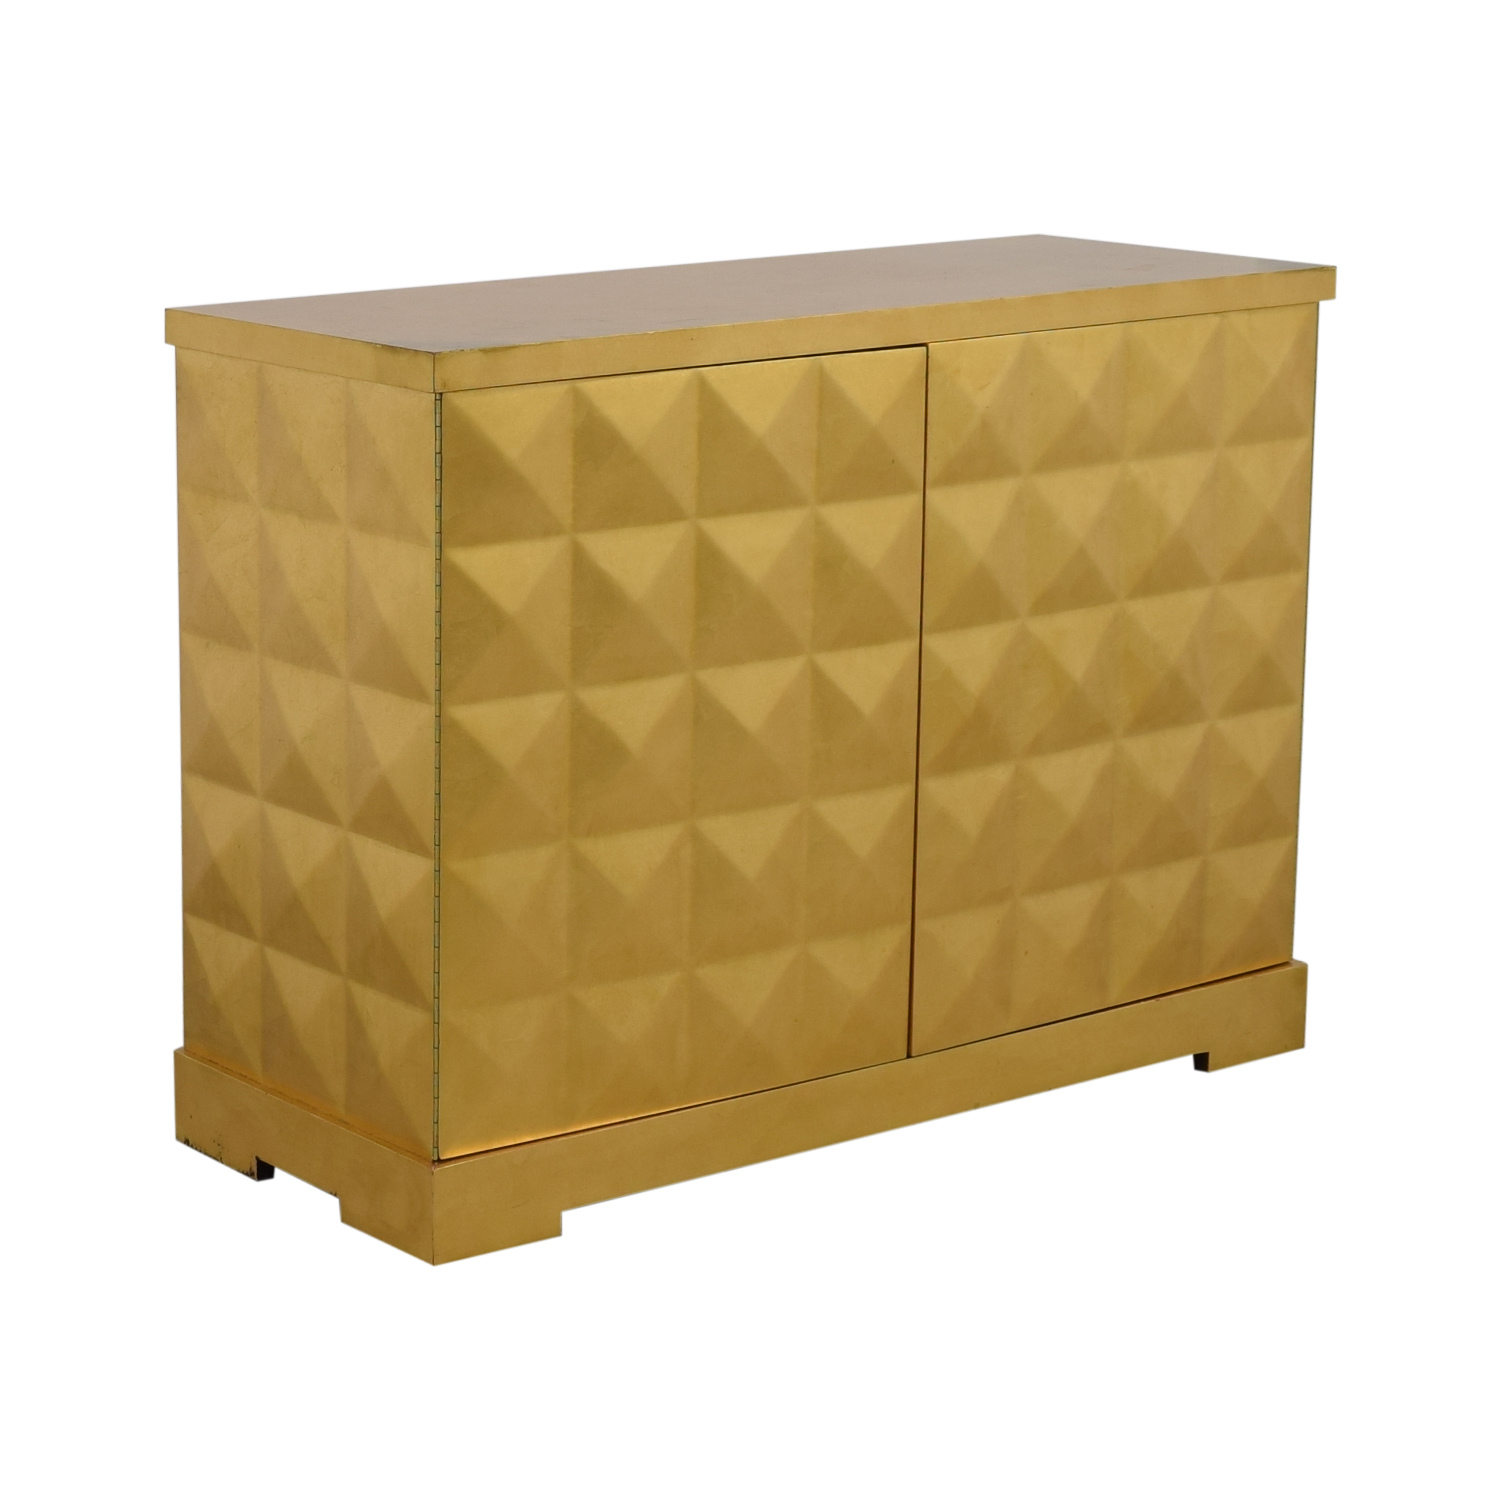 80 Off Baker Furniture Barbara Barry For Gold Leaf Cabinet Storage